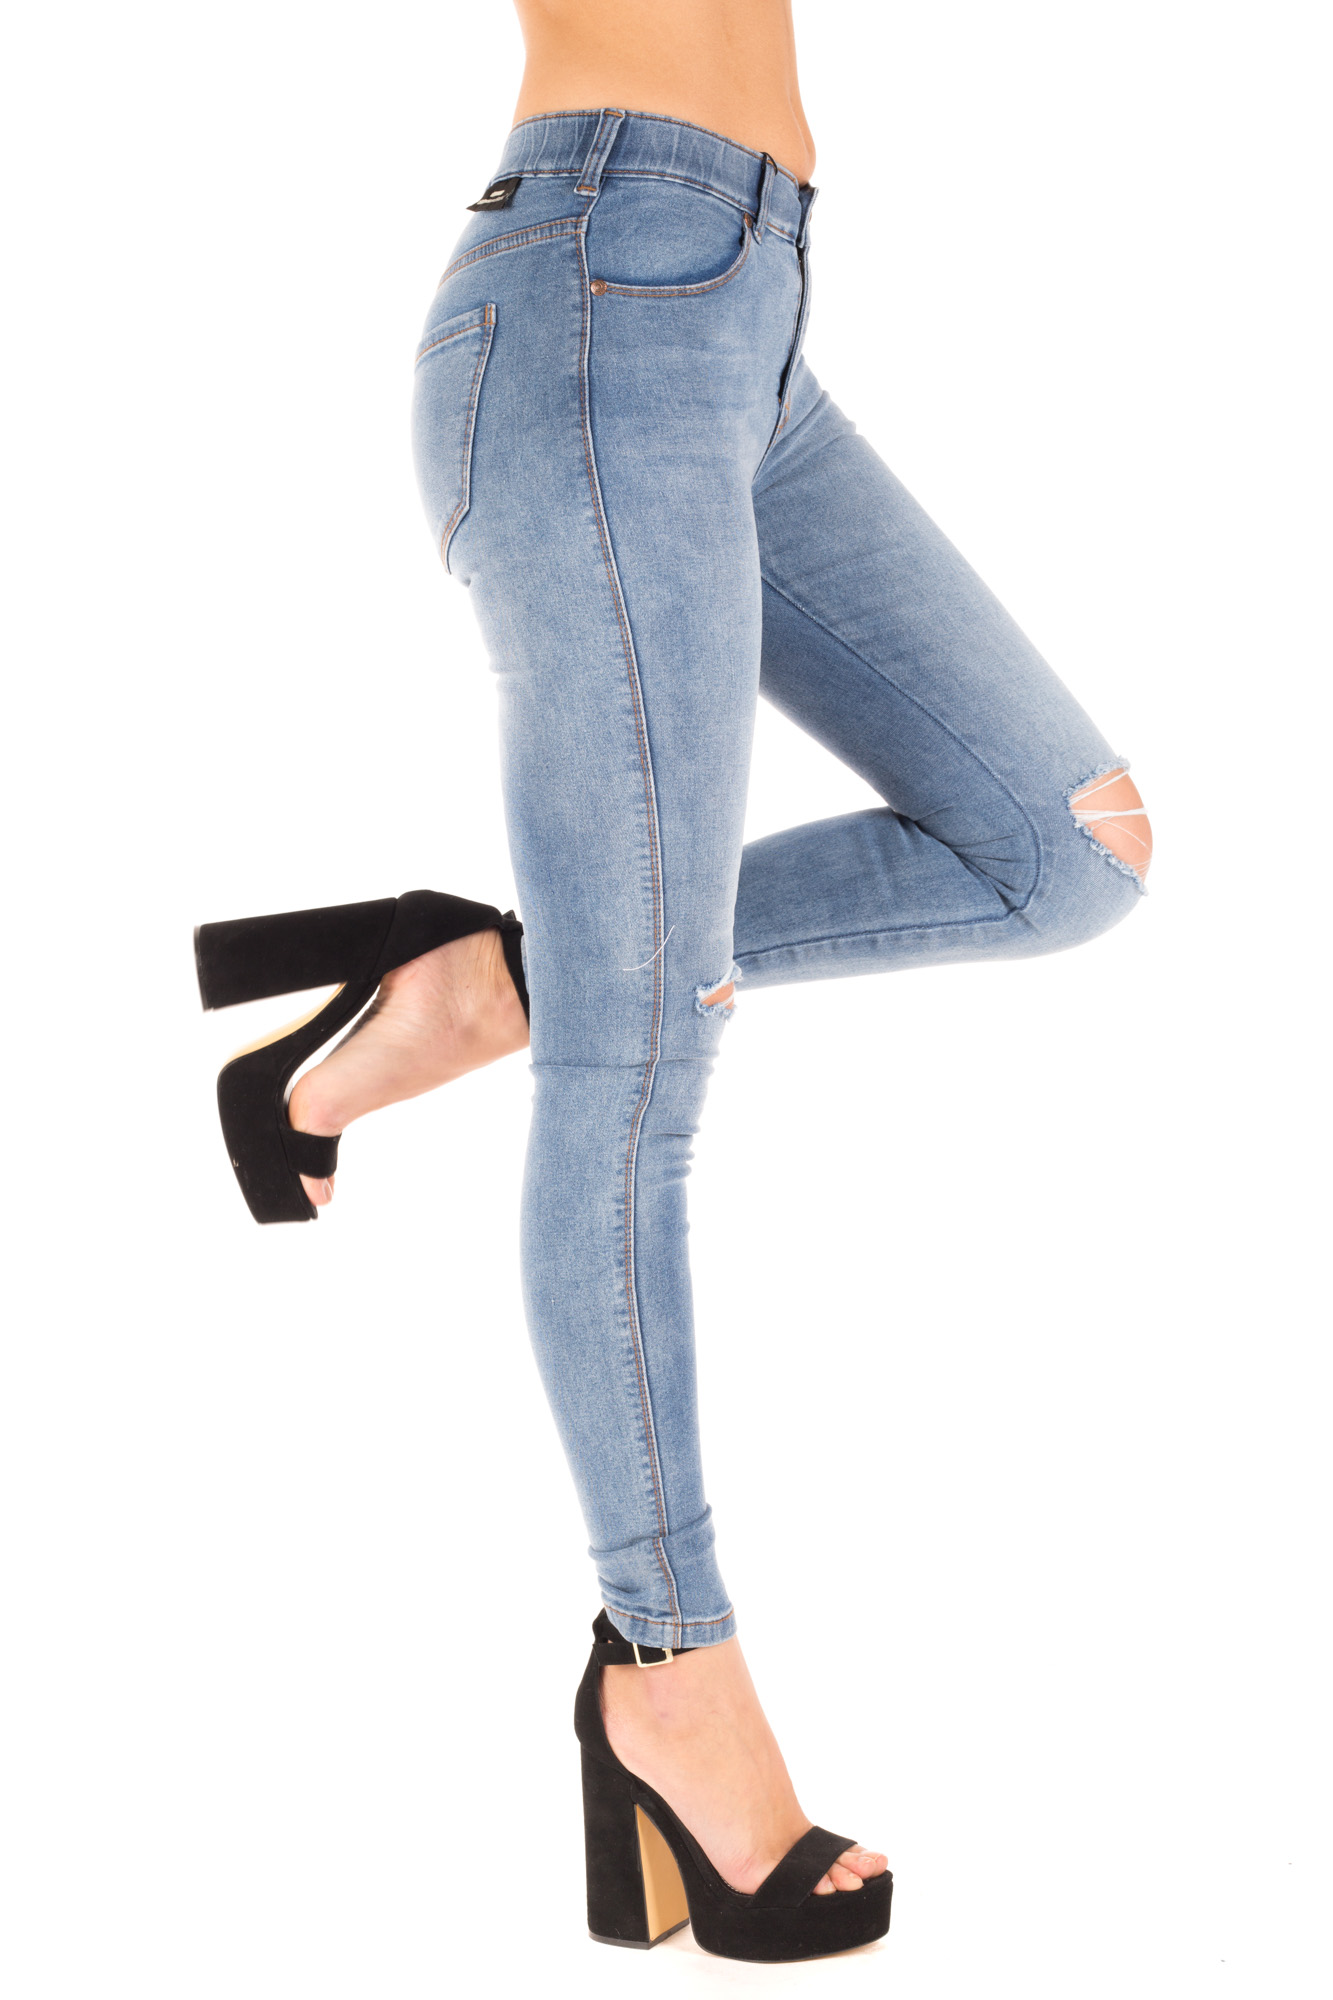 Dr. Denim - Weathered Skinny Jeans with Ripped Knees